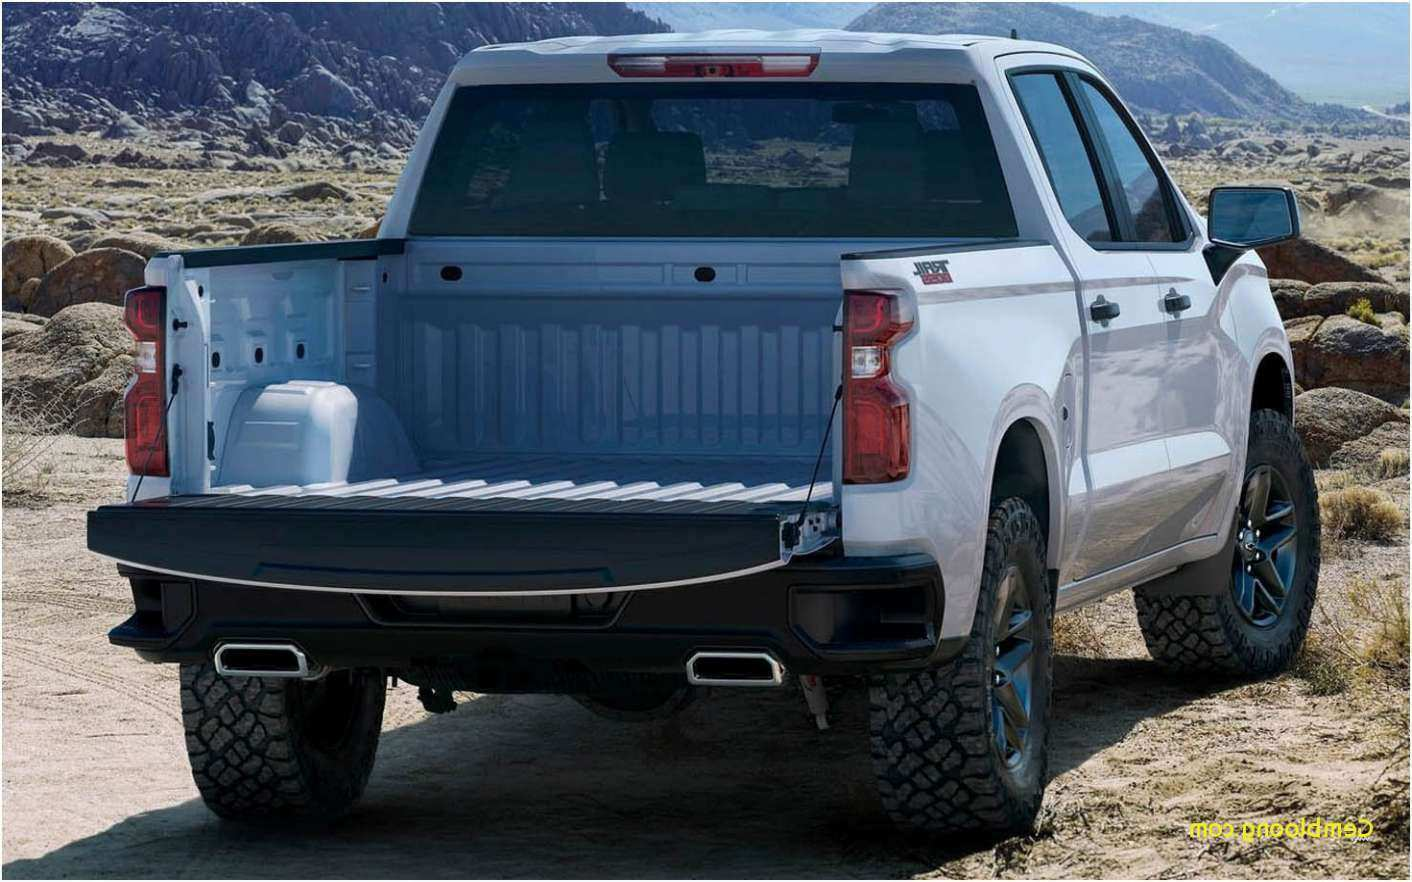 19 New 2020 Chevy Colorado Going Launched Soon Specs